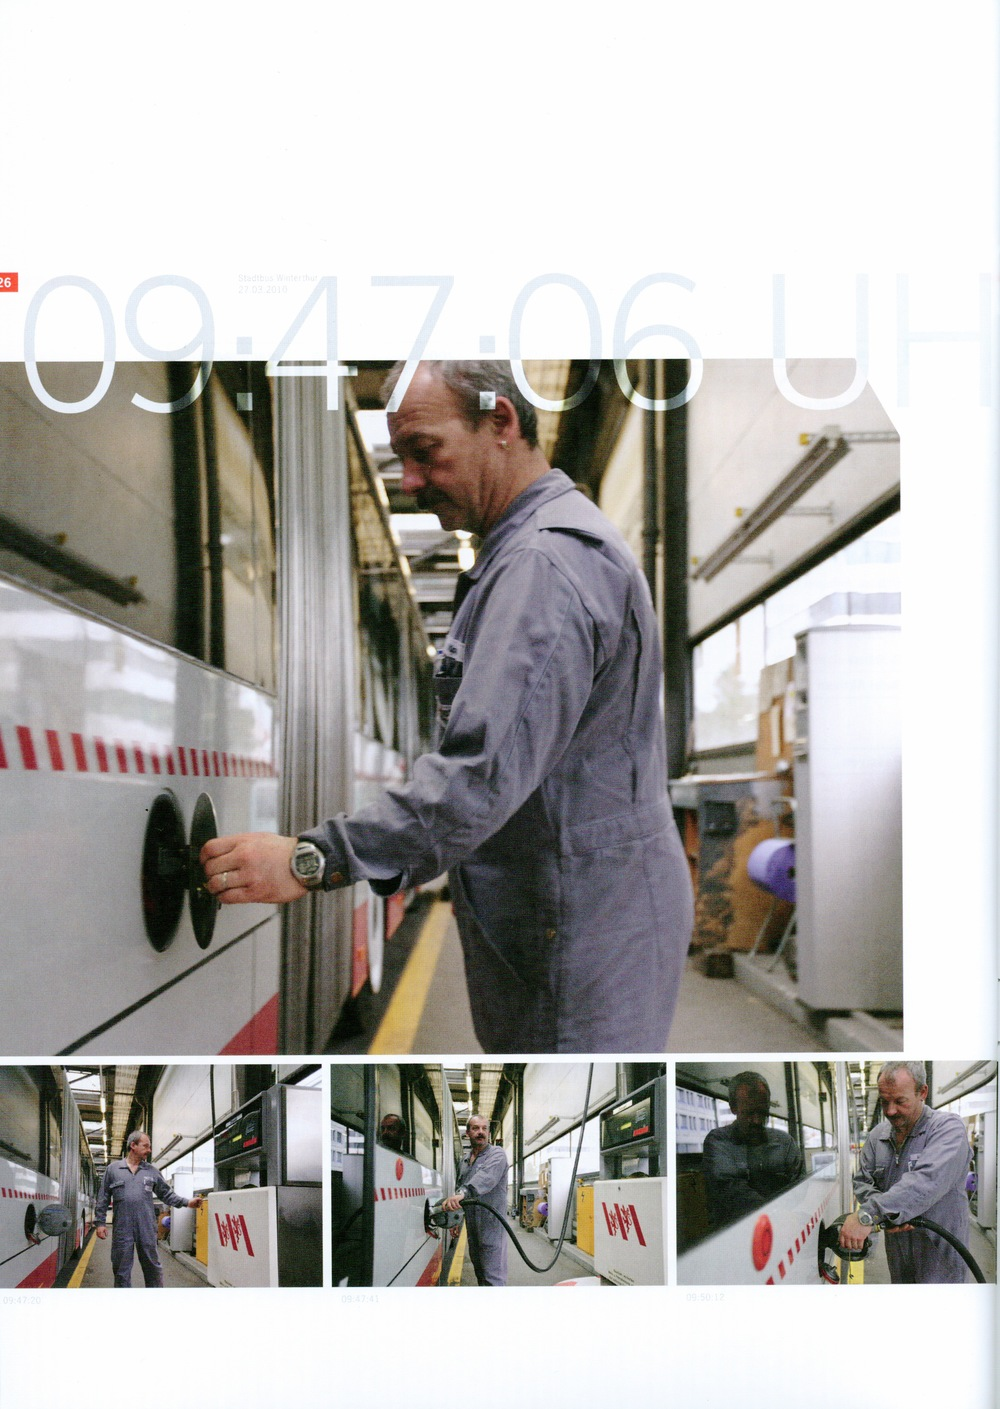 stadtbus-winterthur-annual-report-image-sequence-photography-video-production-by-brilliant-lens.jpg